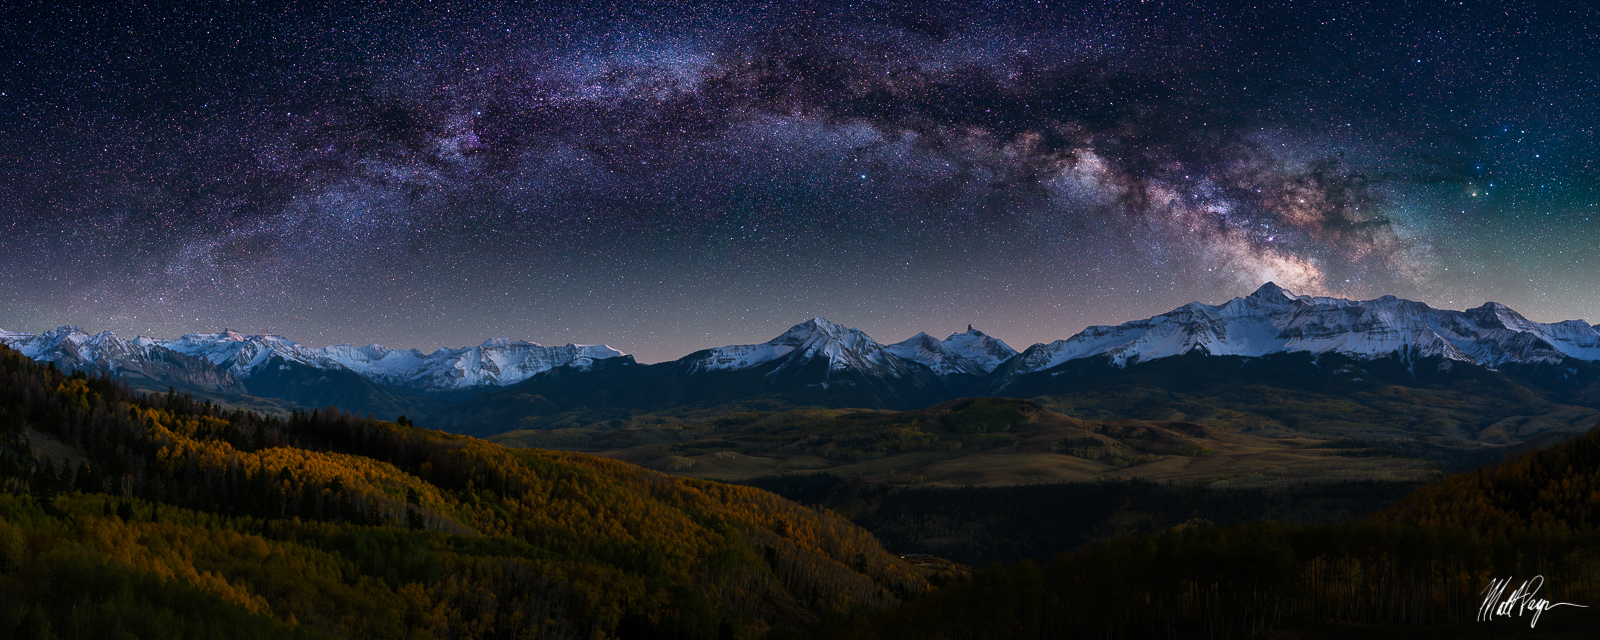 Telluride, Milky Way, 14er, Wilson Peak, Lizard Head Peak, 13ers, autumn, stars, Ice Lake Basin, Panoramic, Last Dollar Road, Colorado, photo